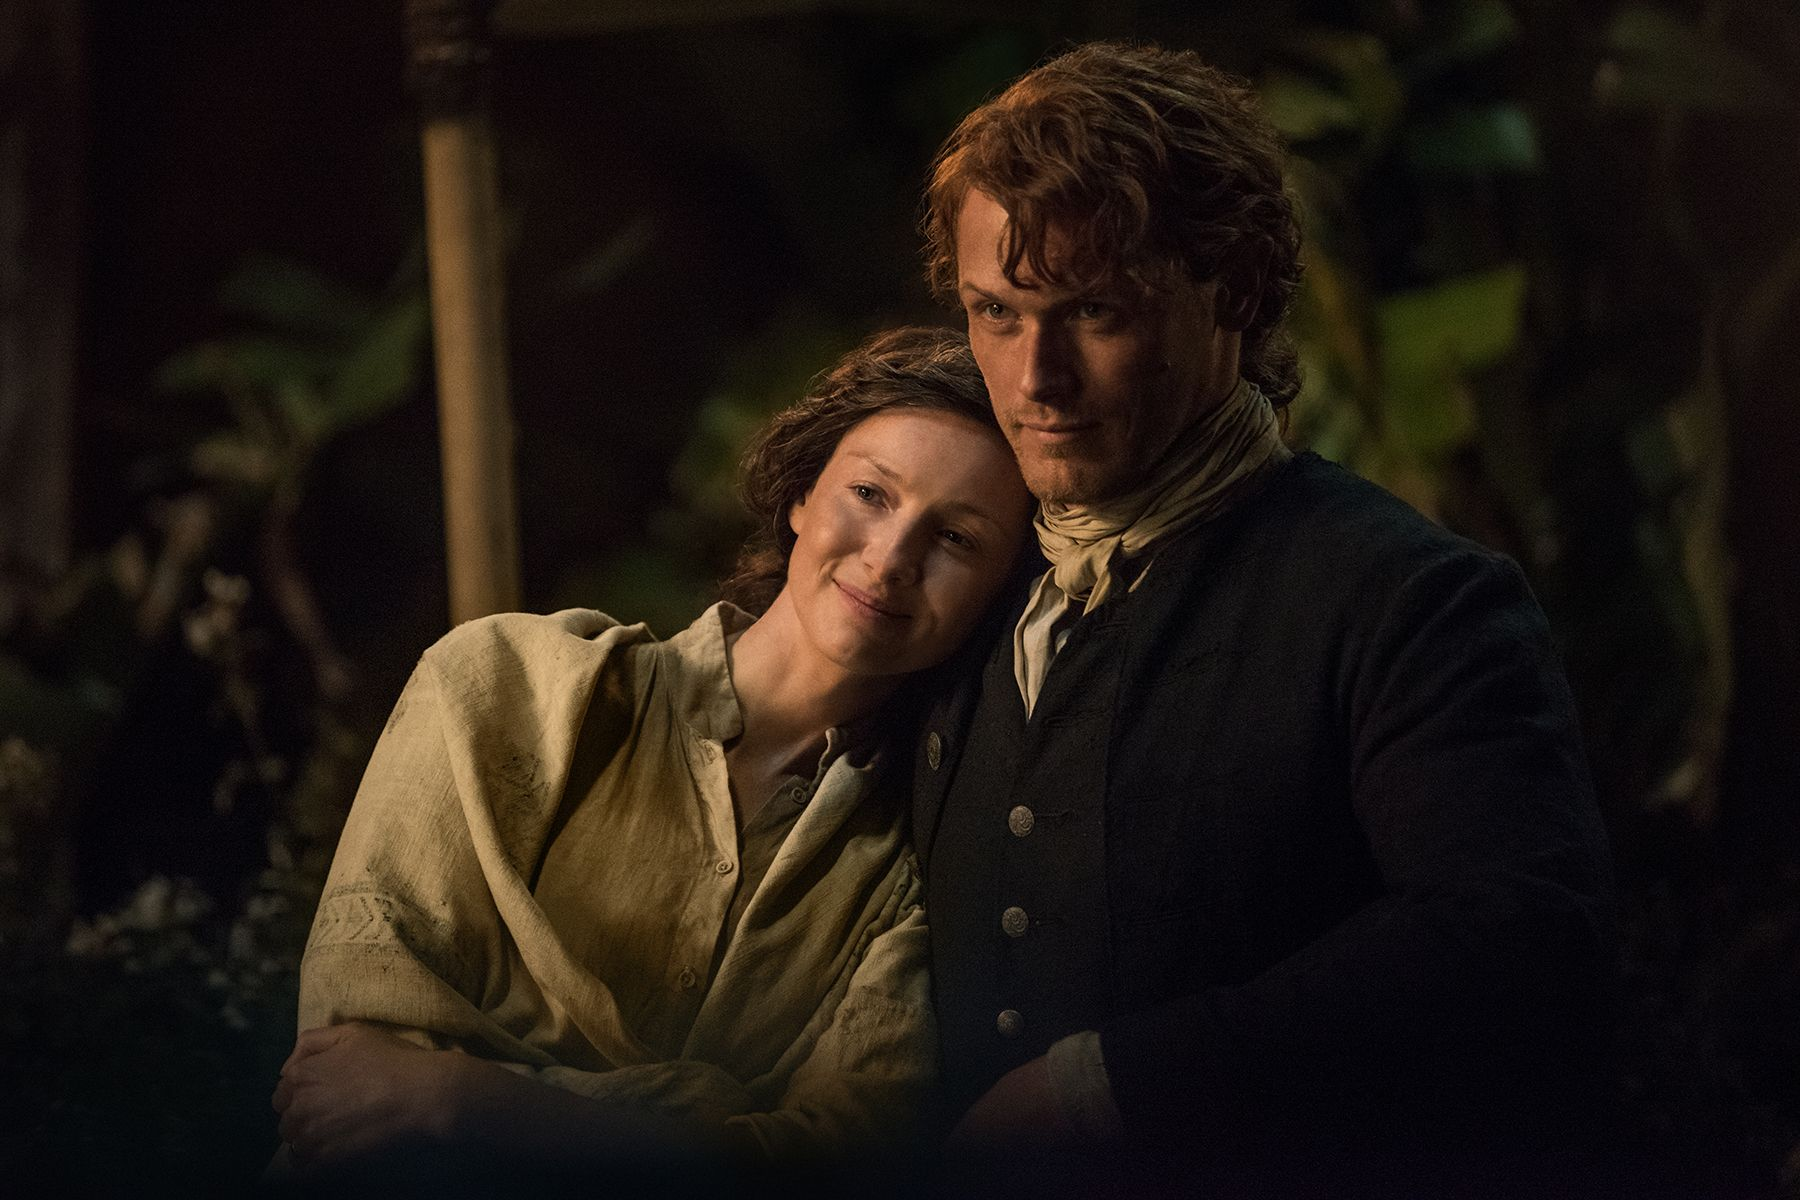 Outlander has been renewed for seasons 5 and 6